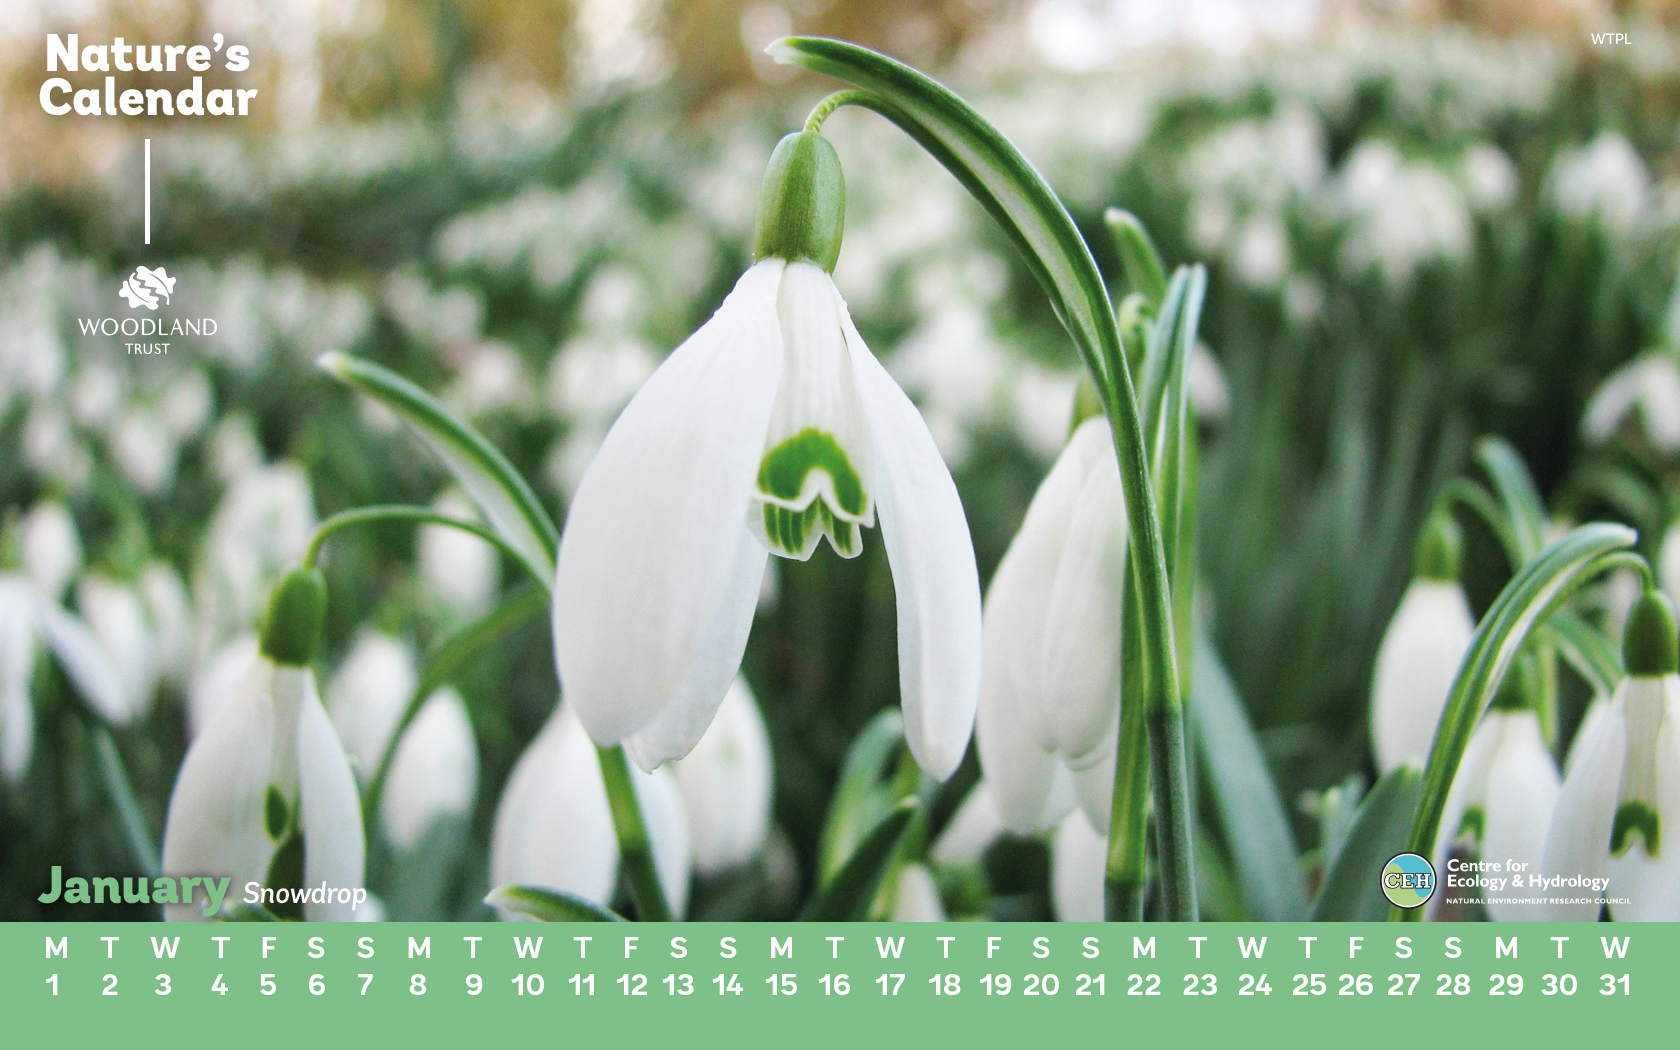 When snowdrops bloom 17